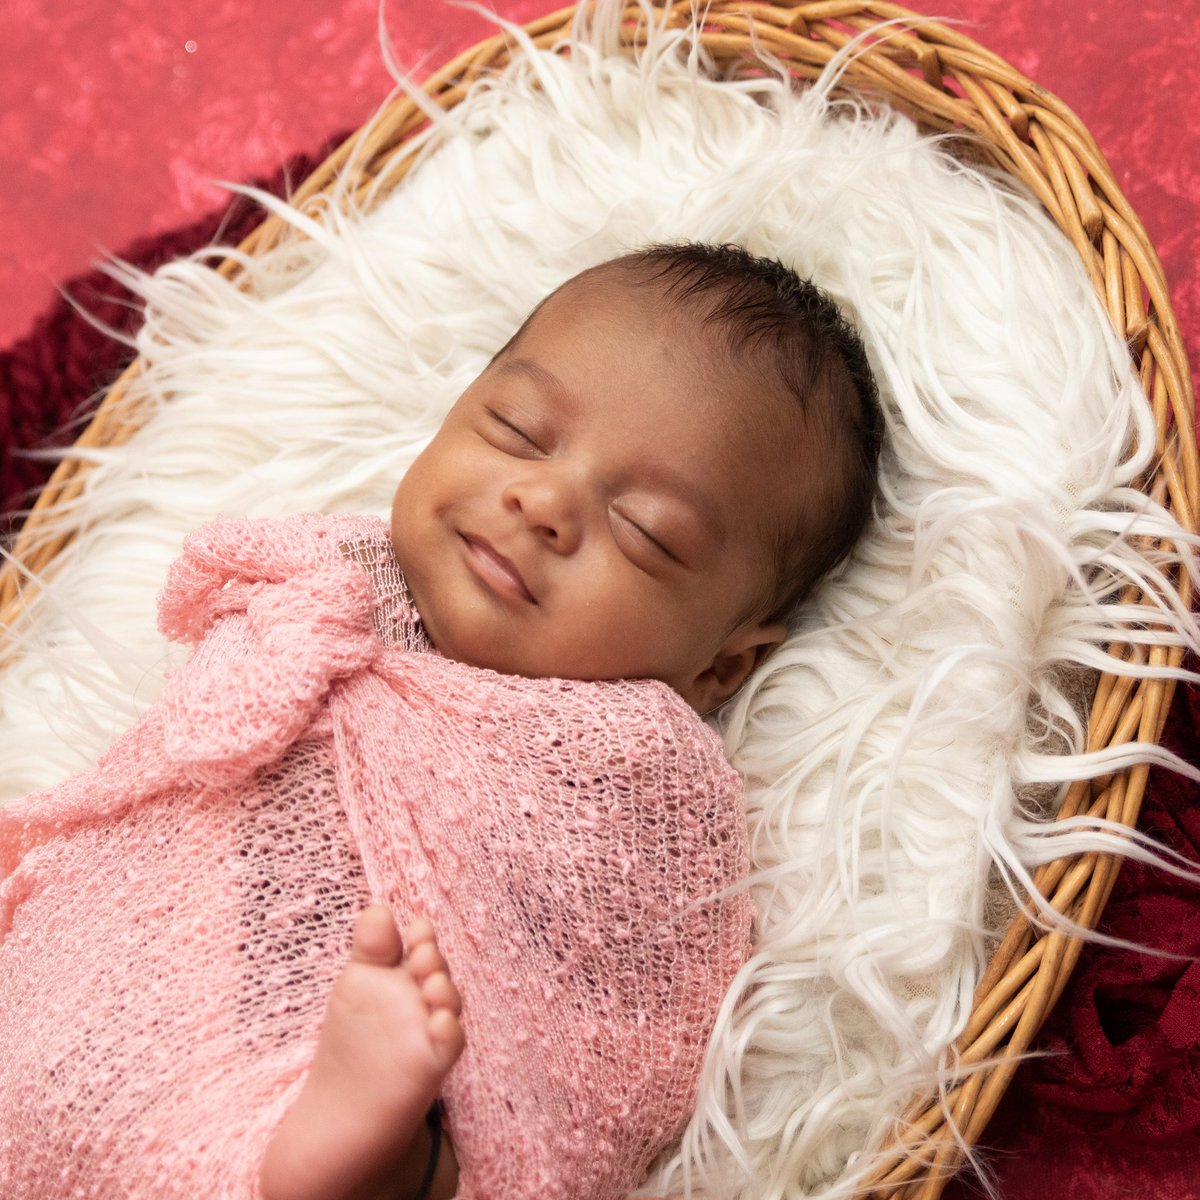 Lifeinclicksphotography Former Rhuchakulkarni On Twitter A Baby S Smile Is The Purest Form Of Happiness In The World Good Morning Newbornphotographer Newbornbaby Newbornphotographers Newborn Newbornposing Newbornphotoprops